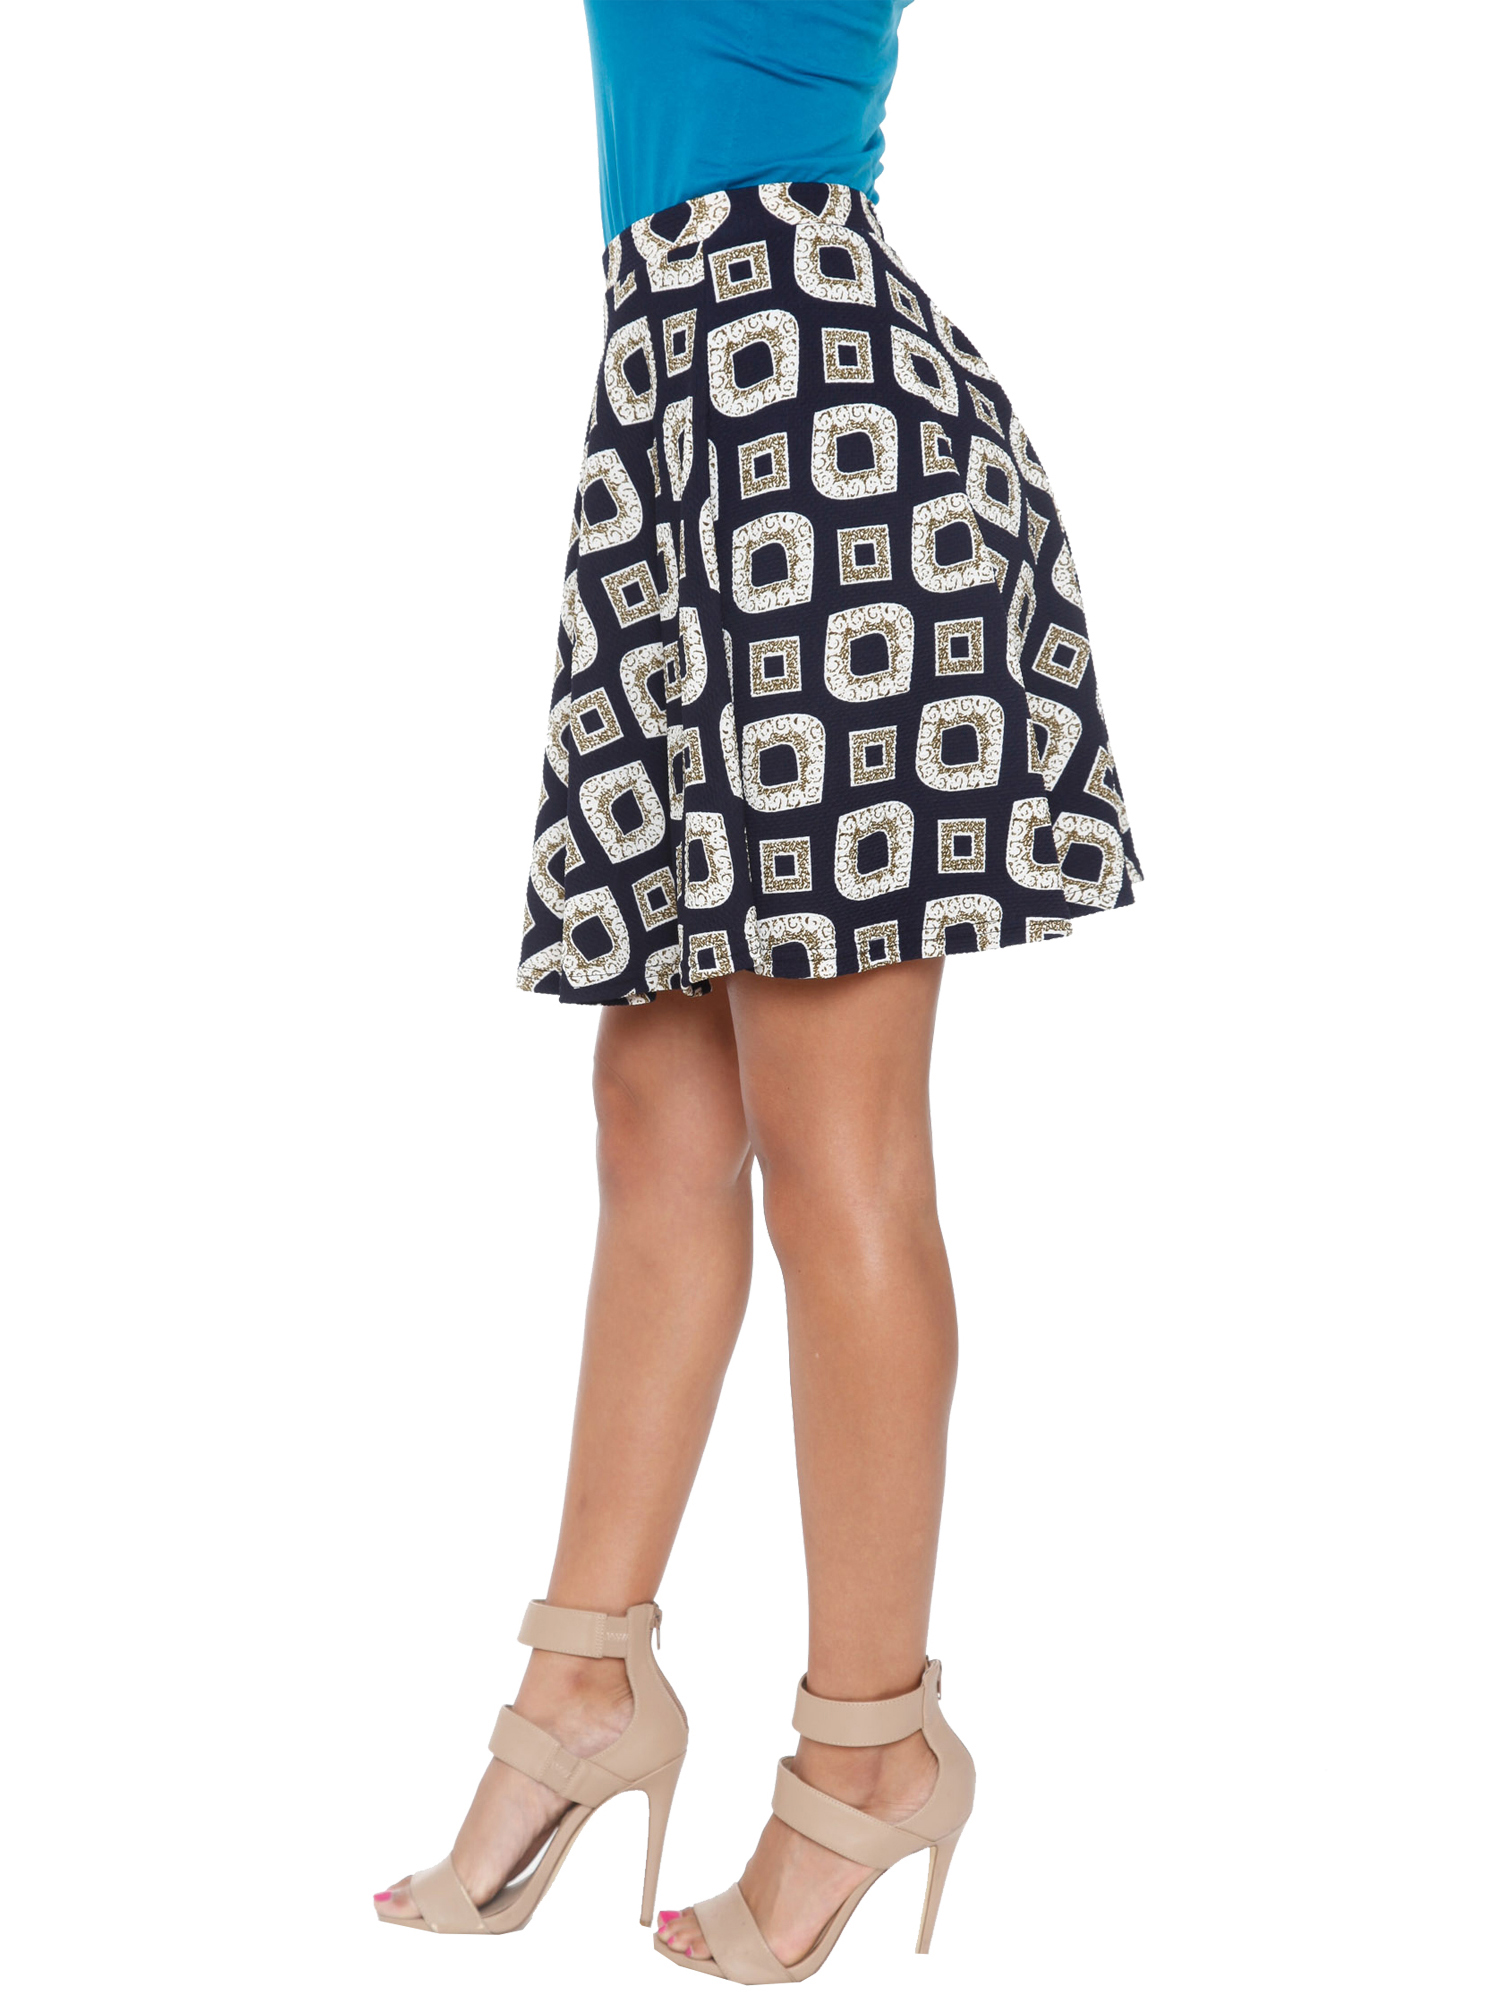 Women's Printed Fit and Flare Skirt